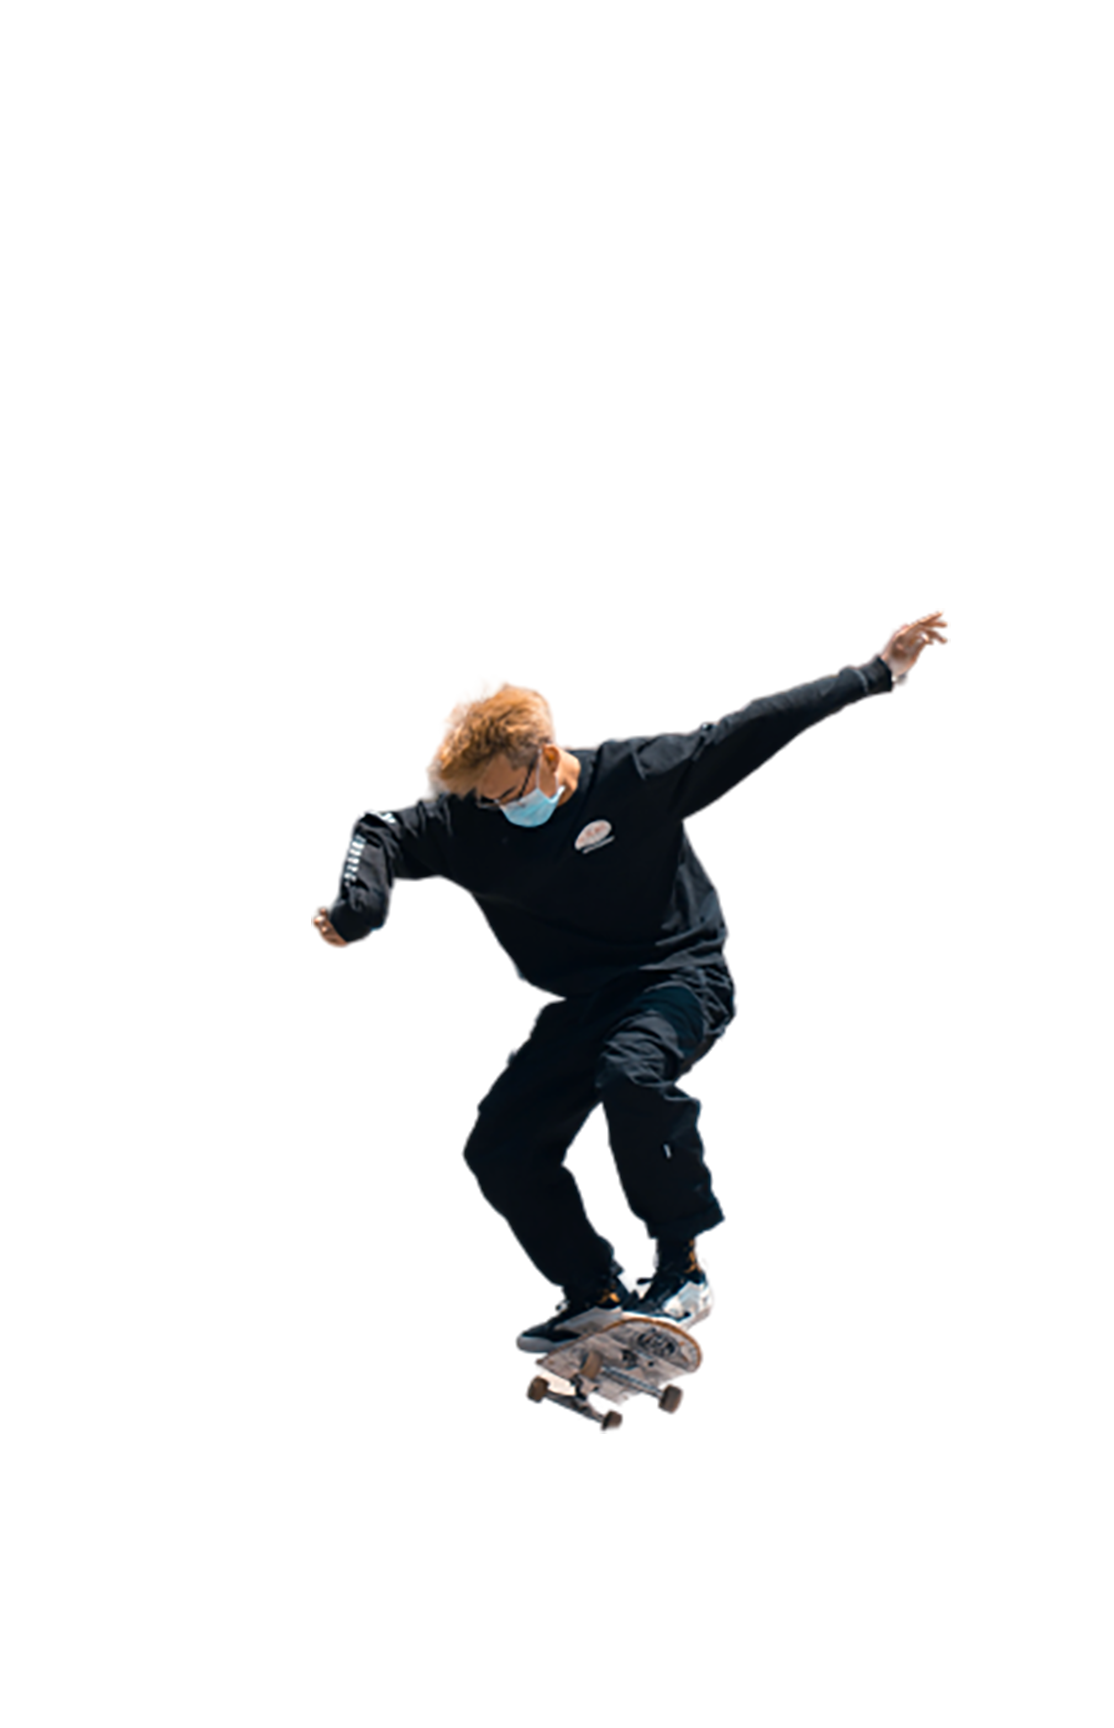 Skateboarder is trying a kickflip transparent background PNG